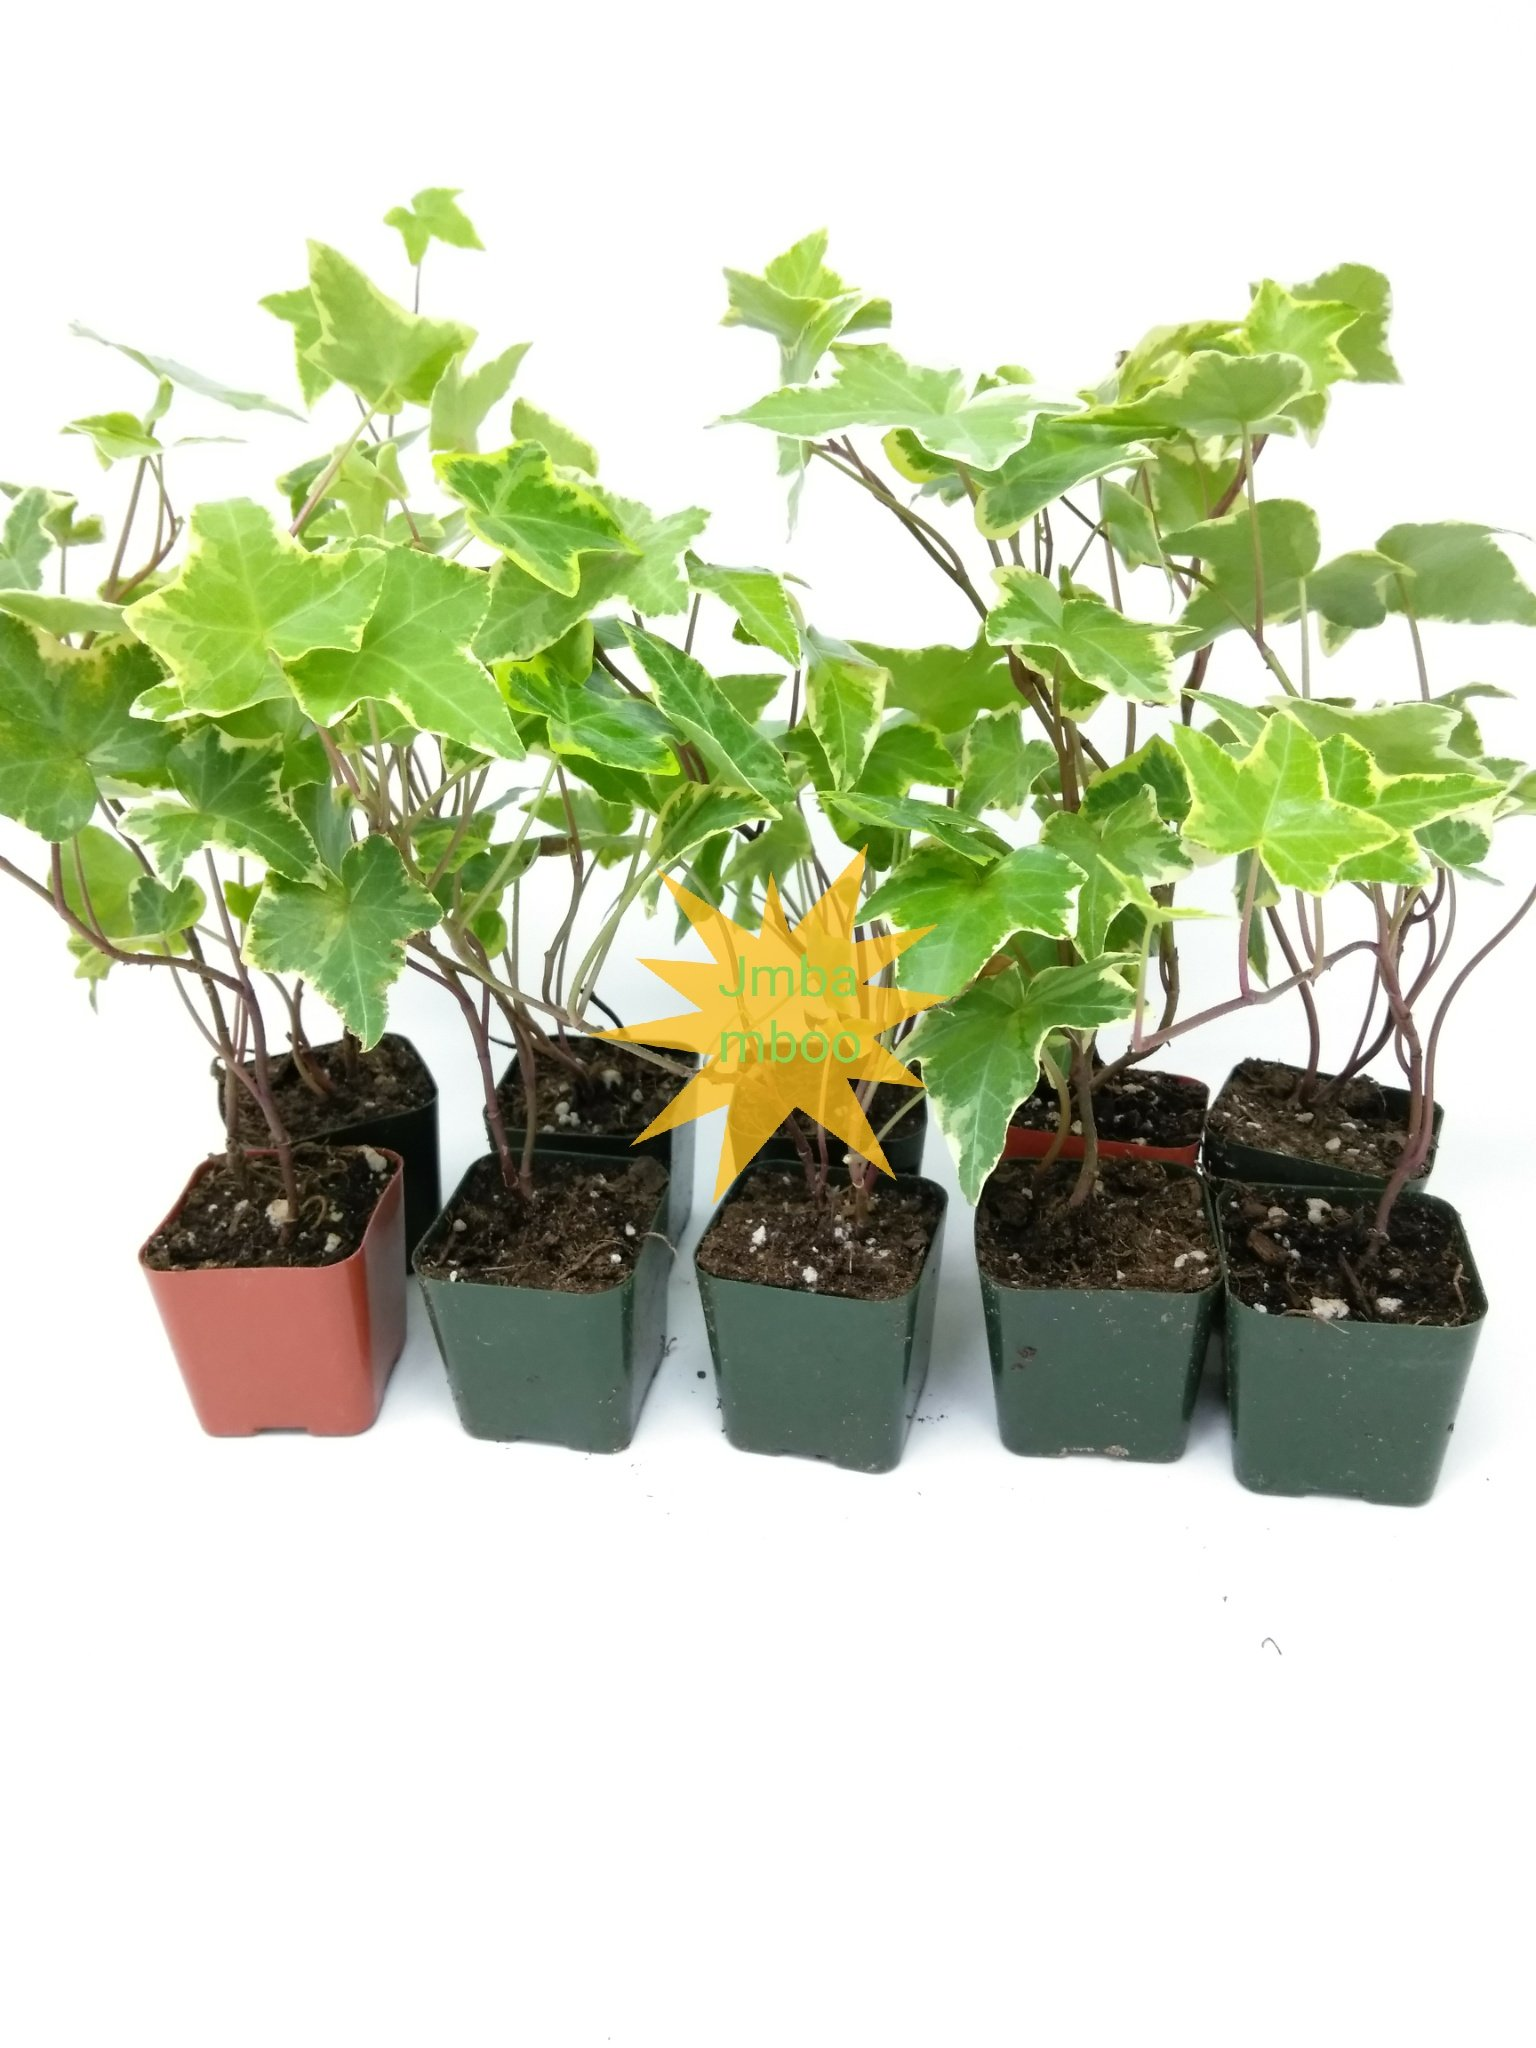 Jmbamboo - English Ivy Hedera Helix Air Purification Plant - Groundcover - 2 1/4'' Pot by Jmbamboov (Image #2)